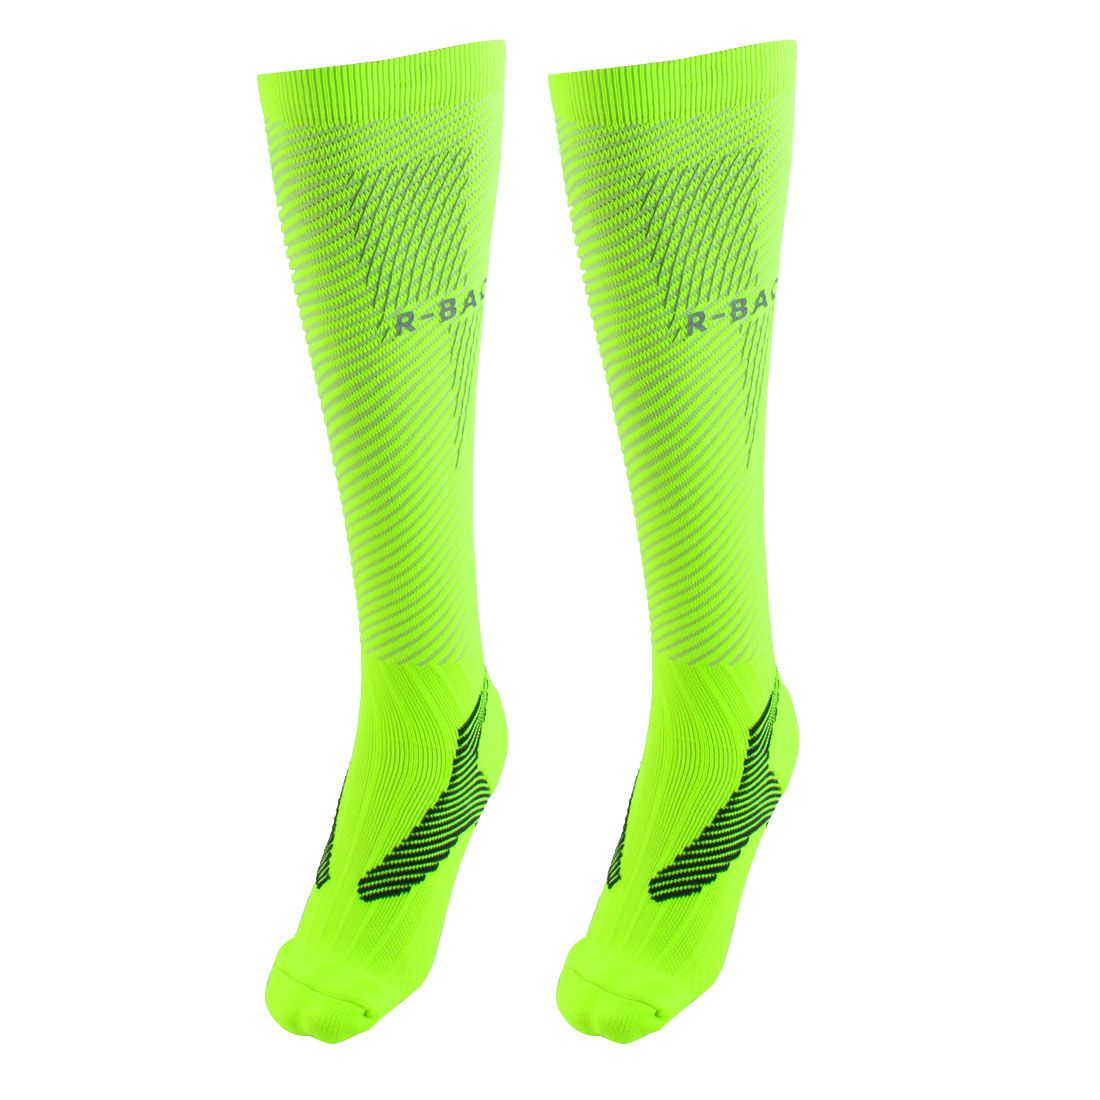 R-BAO Authorized Tennis Cotton Blend Compression Sports Cycling Socks